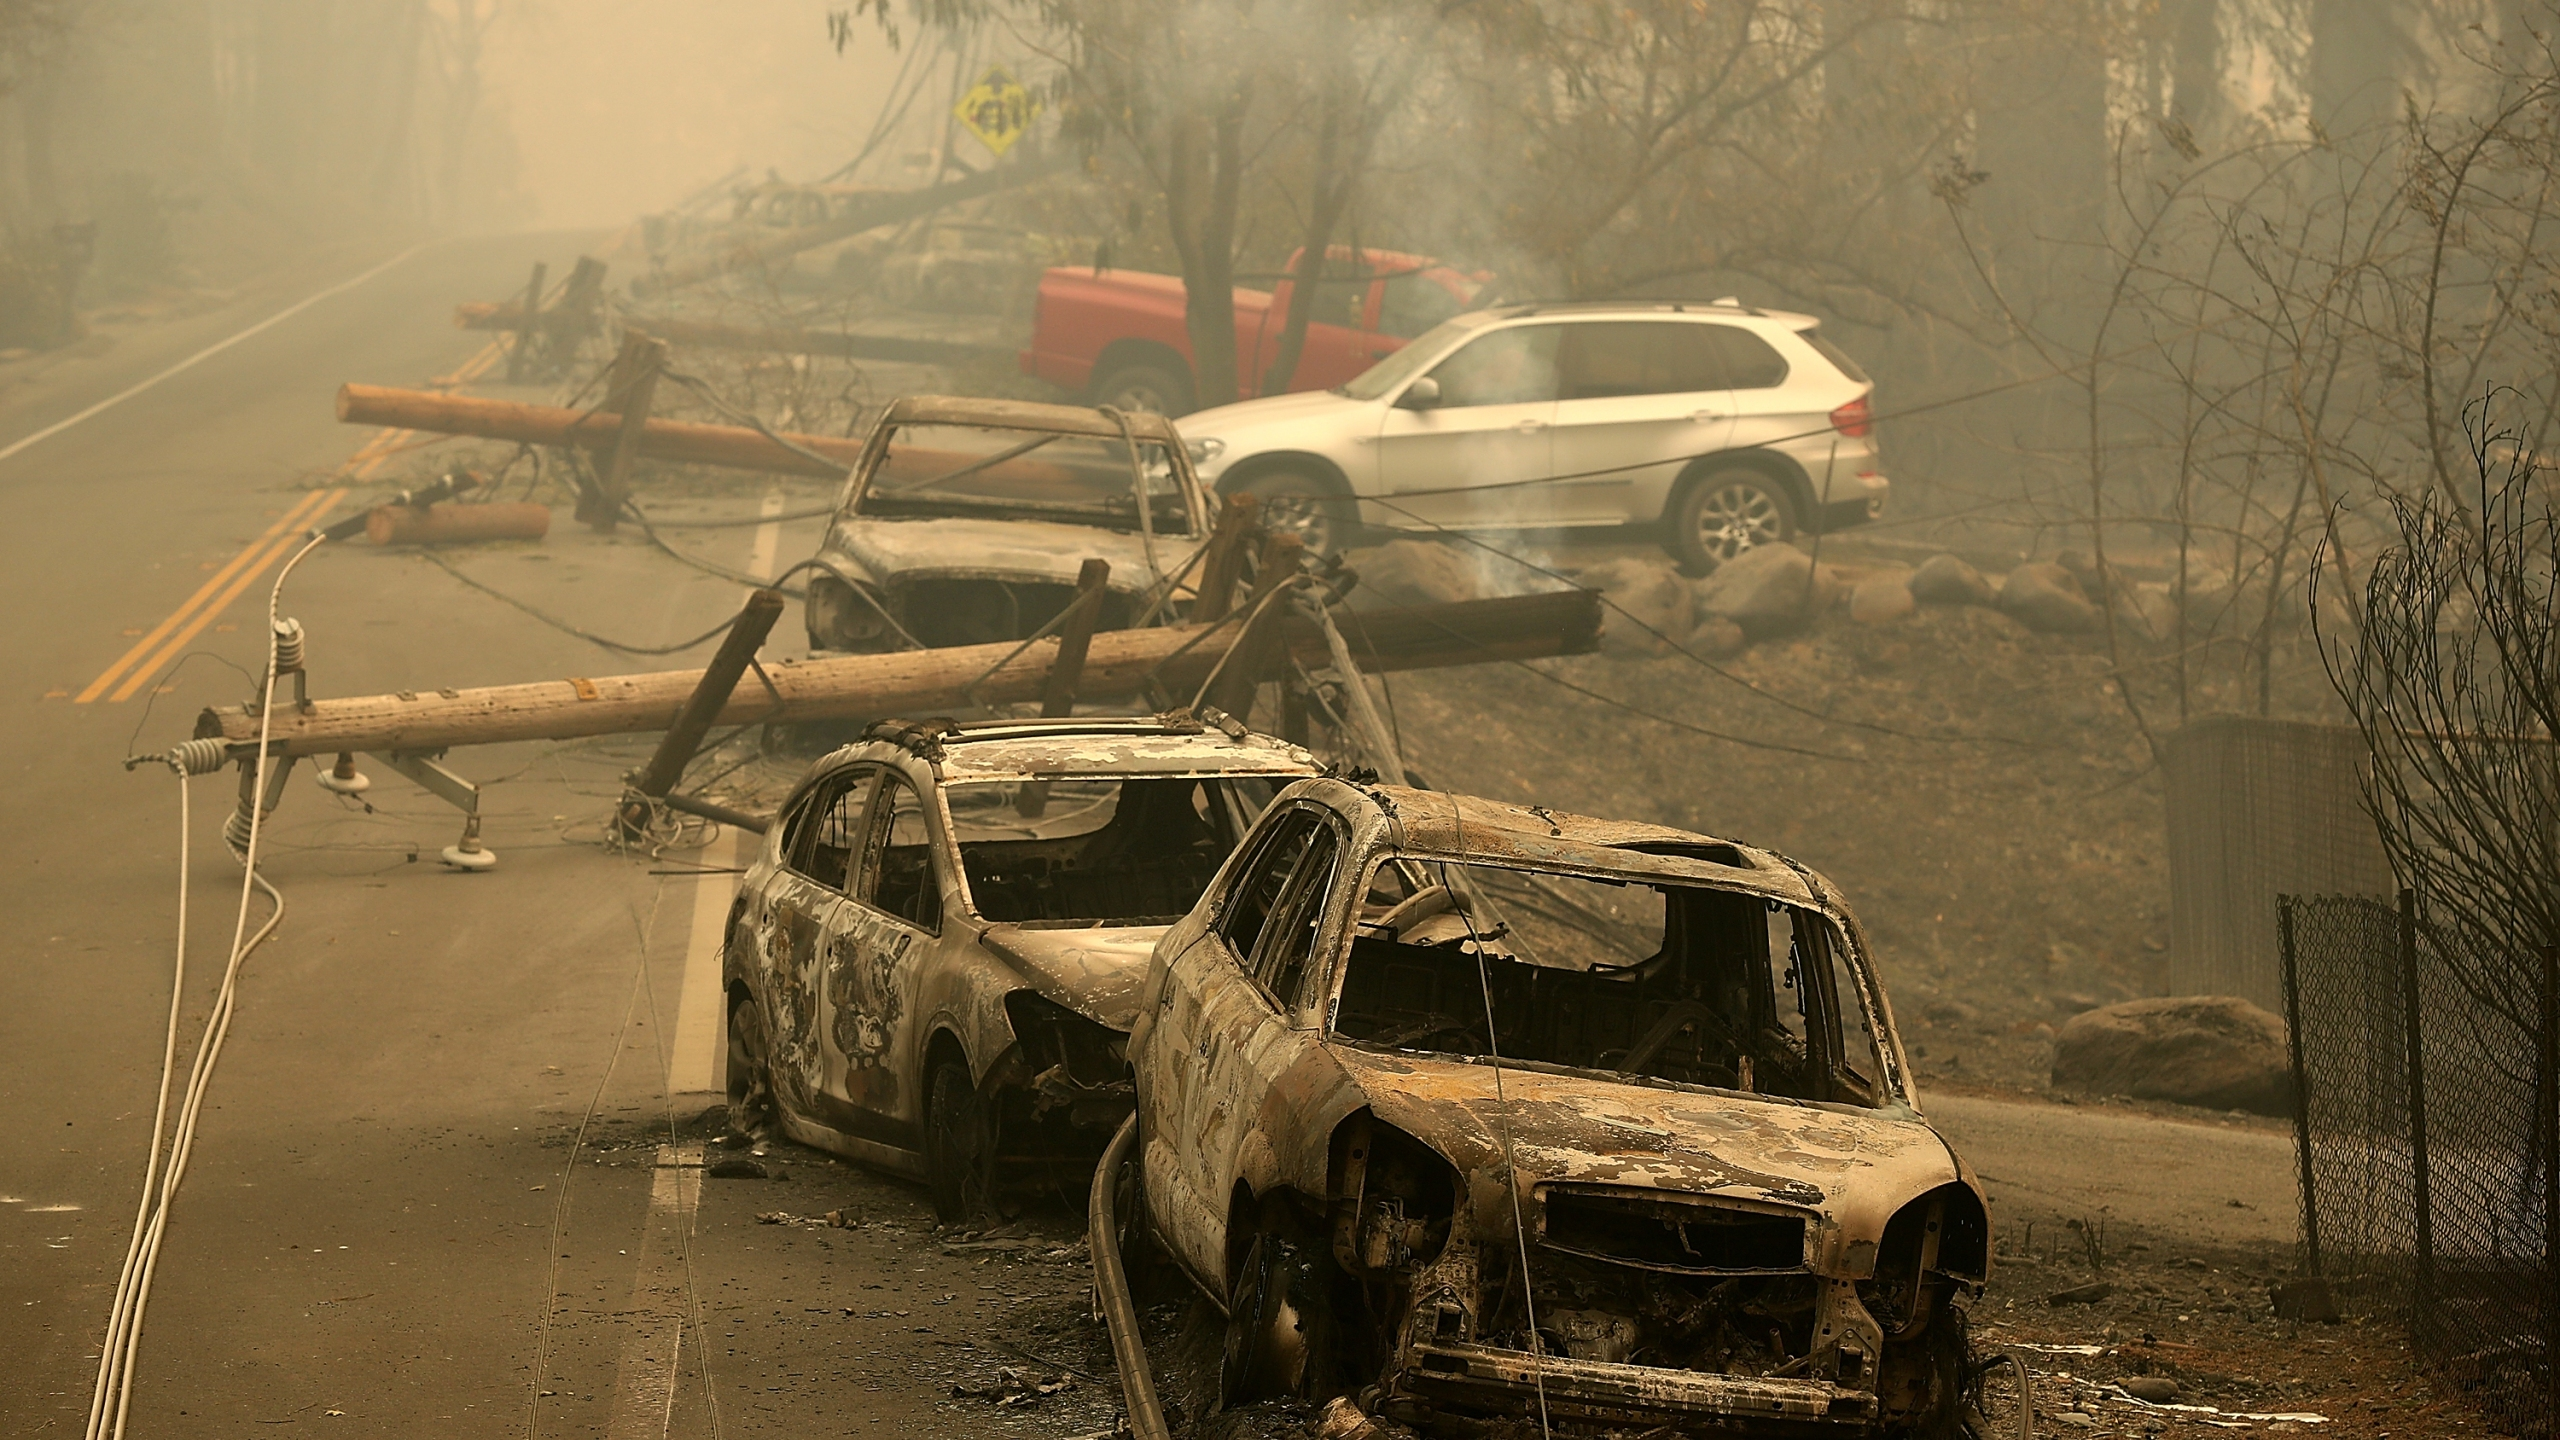 Power lines rest on cars that were burned by the Camp Fire on Nov. 10, 2018 in Paradise, California. (Credit: Justin Sullivan/Getty Images)